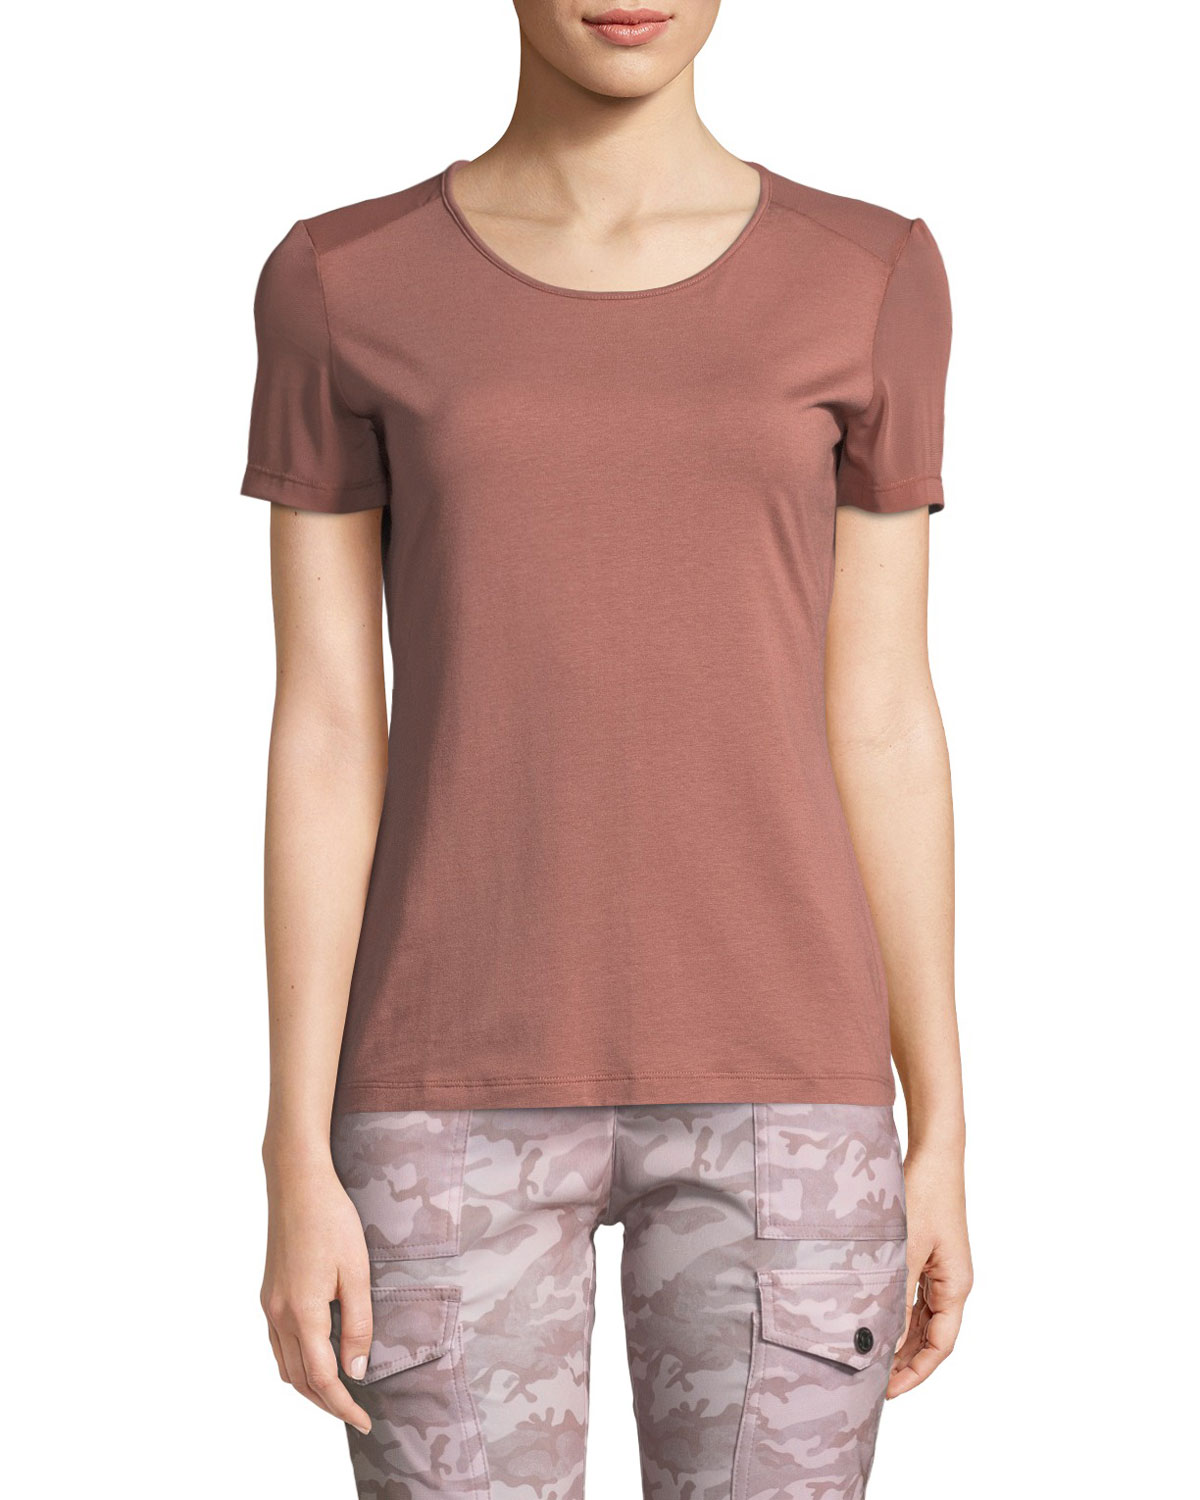 ANATOMIE Summer Melissa Sheer Tee, Light Blush | ModeSens